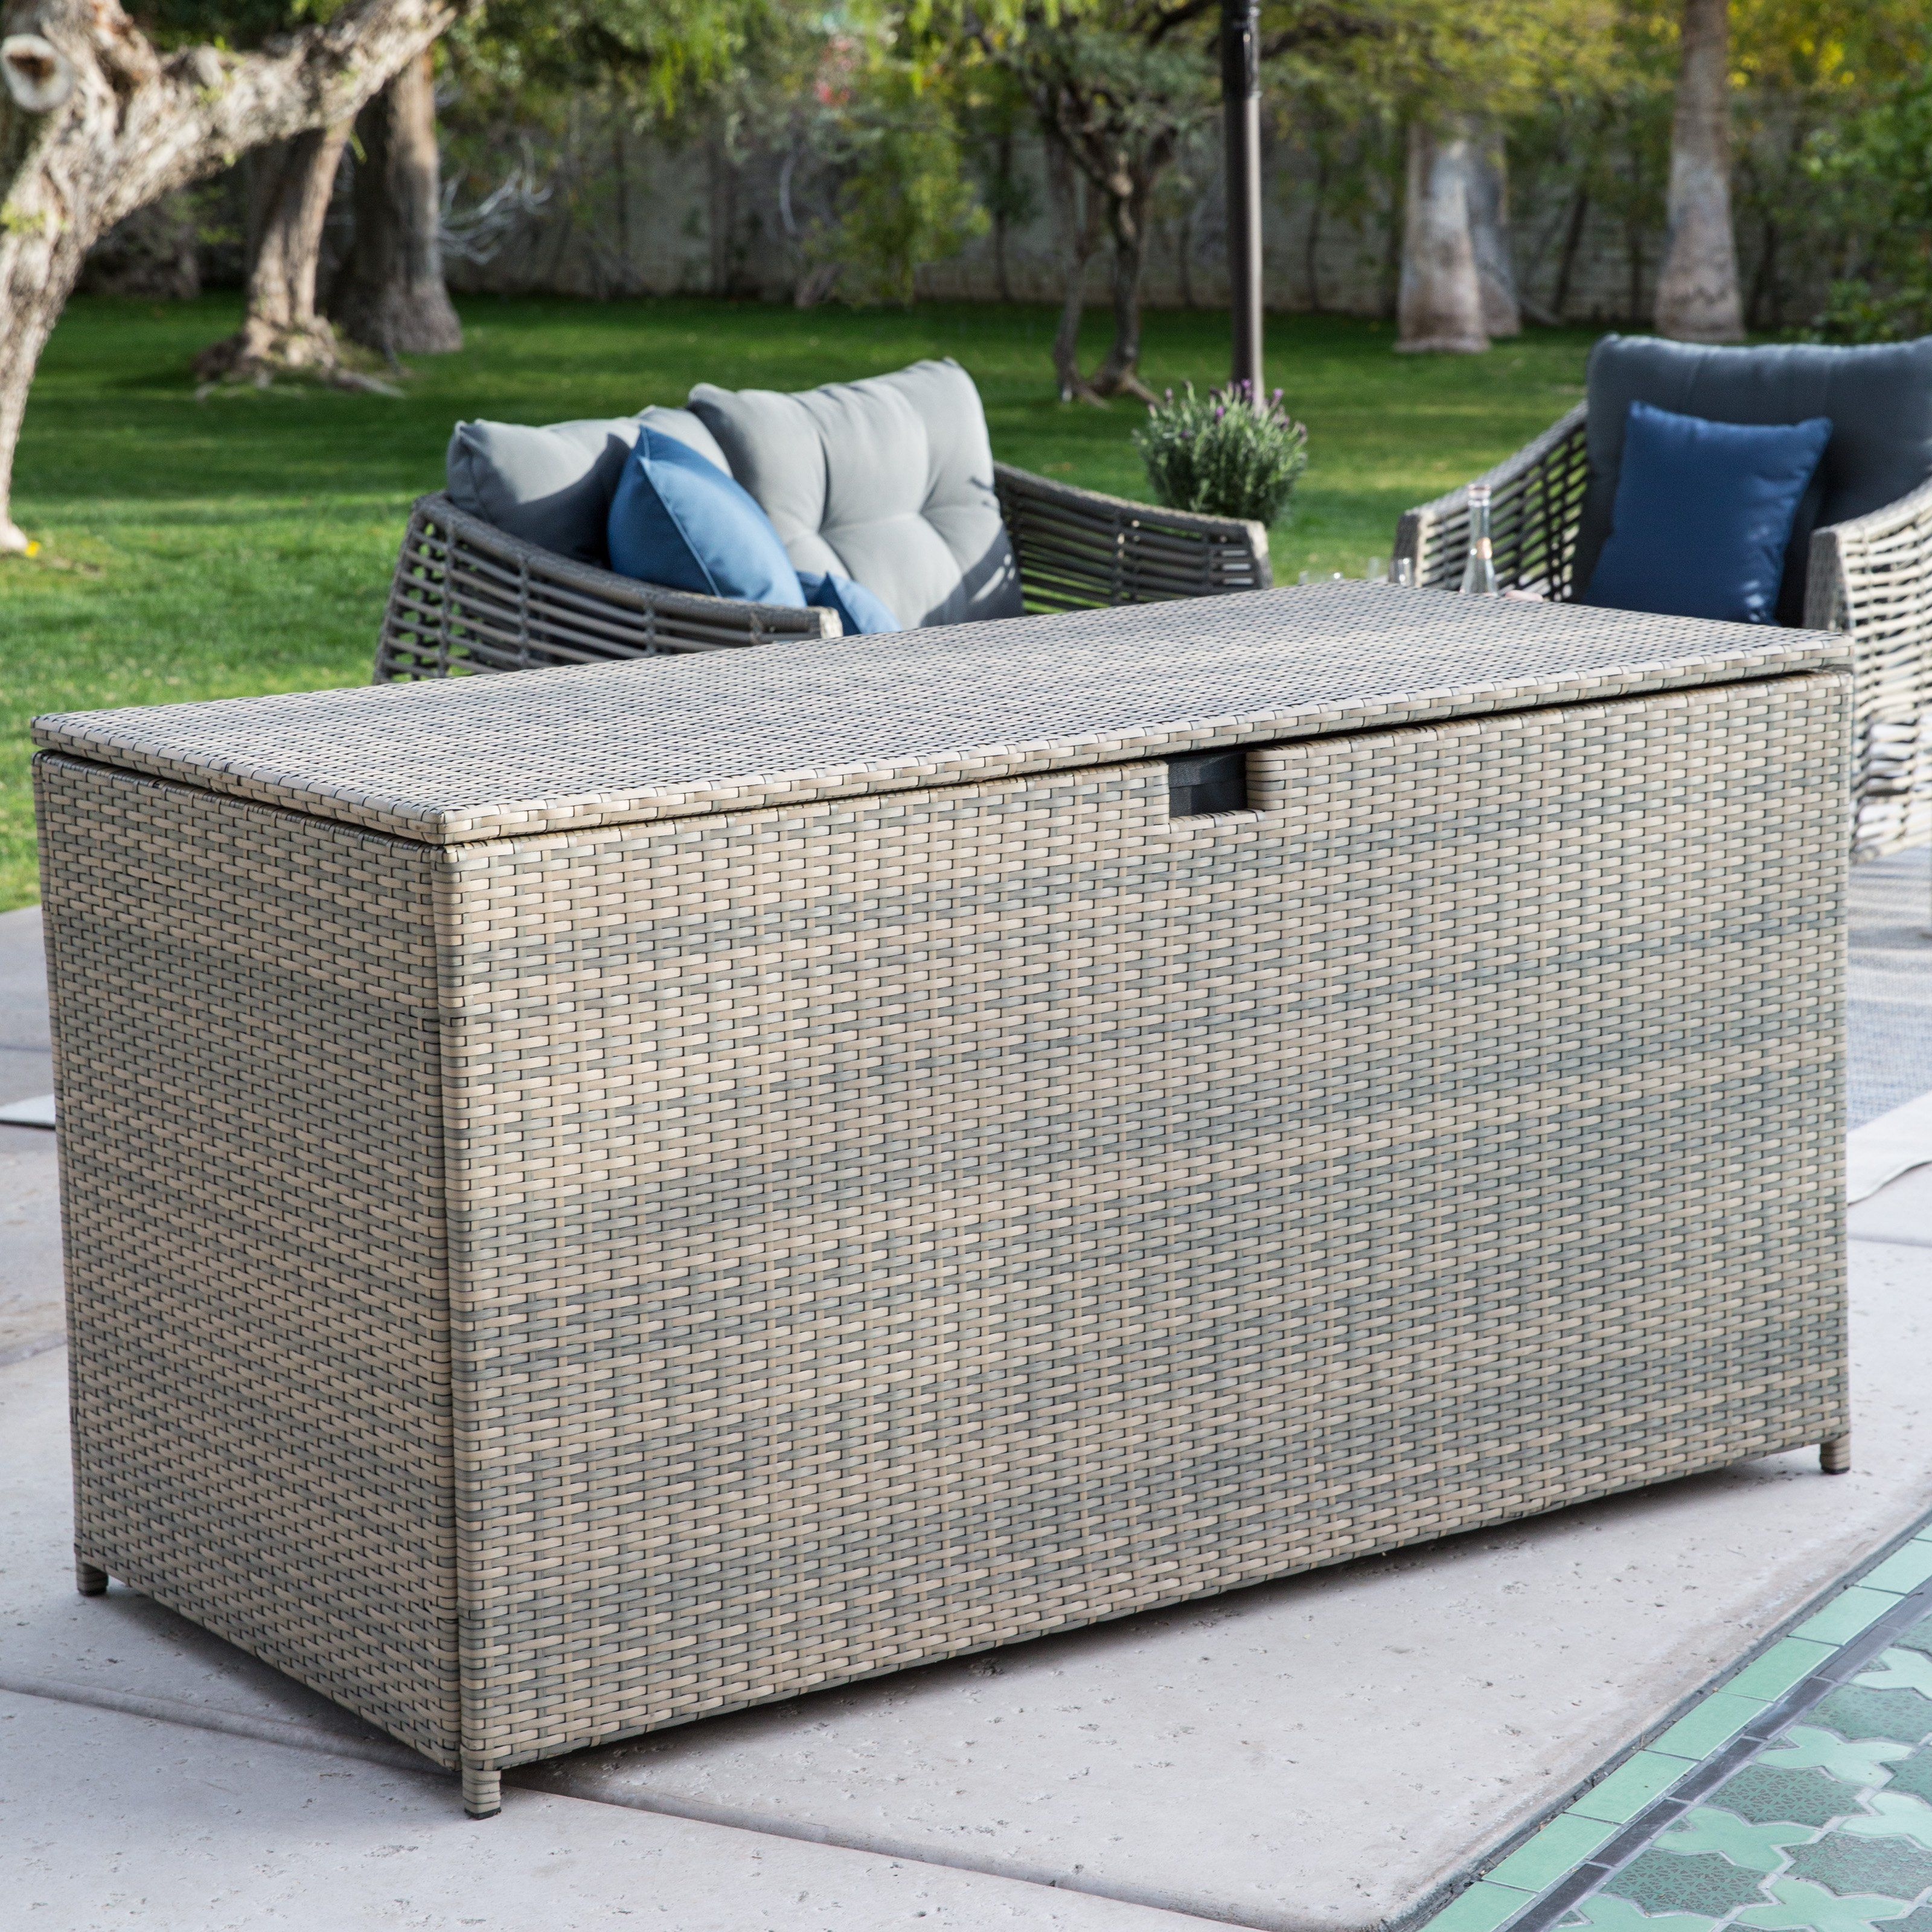 Belham Living Kambree All Weather Wicker 190 Gallon Deck Box   Outdoor  Benches At